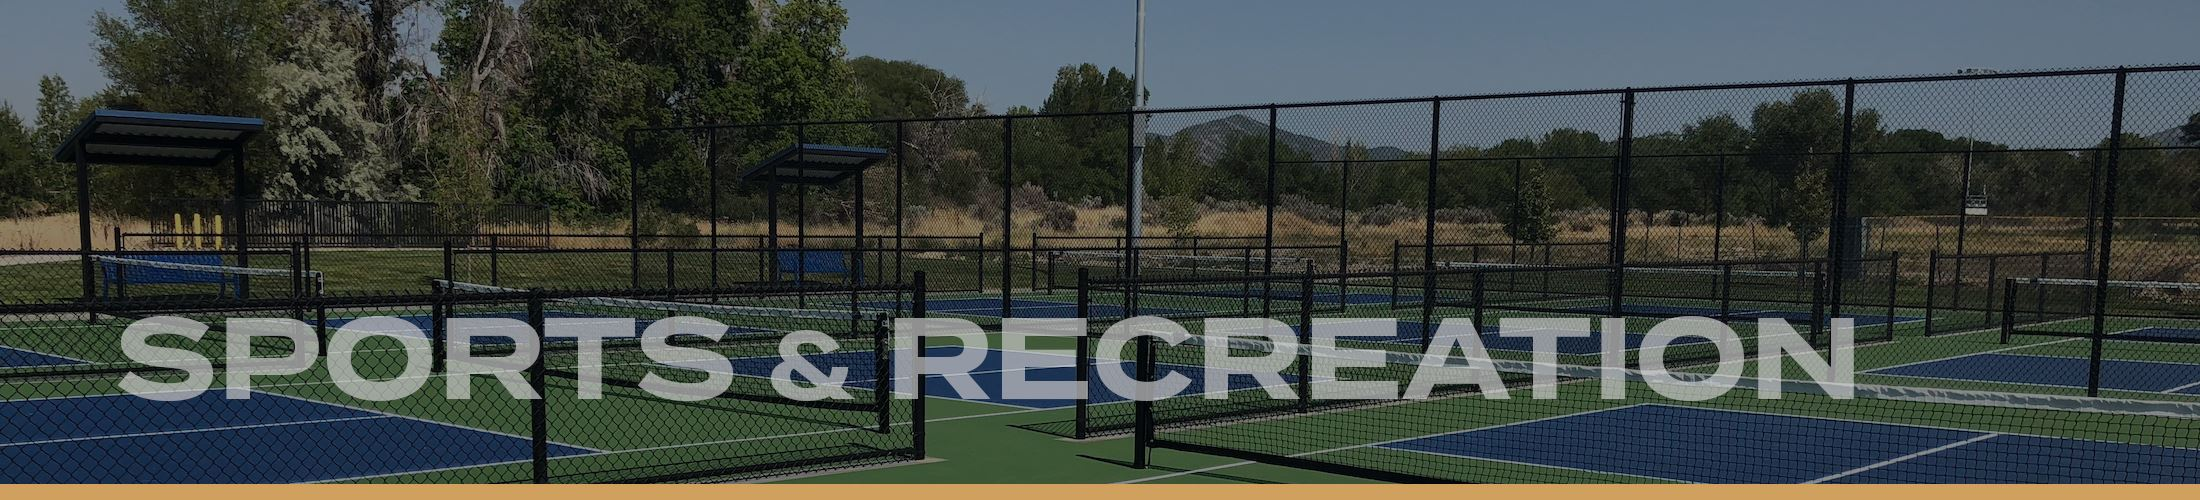 Website Banners 2020 - Sports Recreation